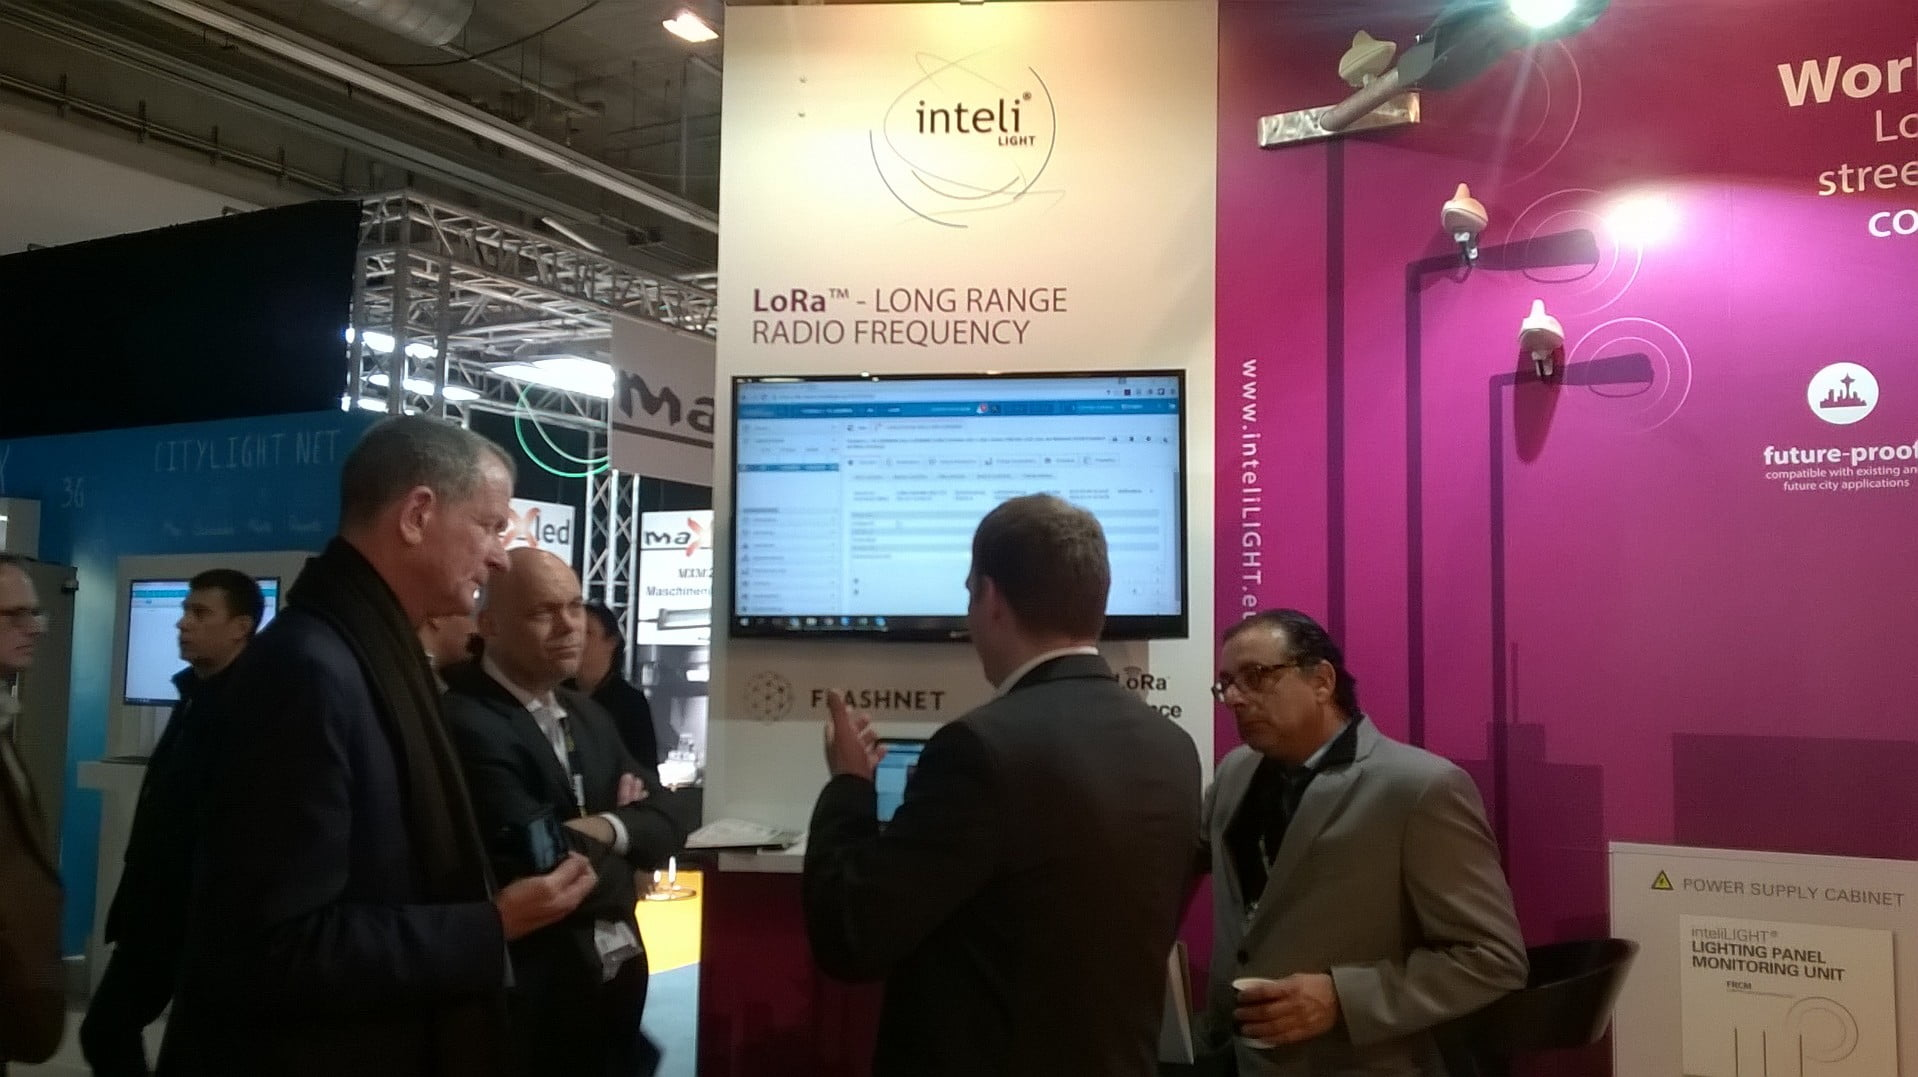 inteliLIGHT® Lora™ streetlight control was the main attraction in Frankfurt